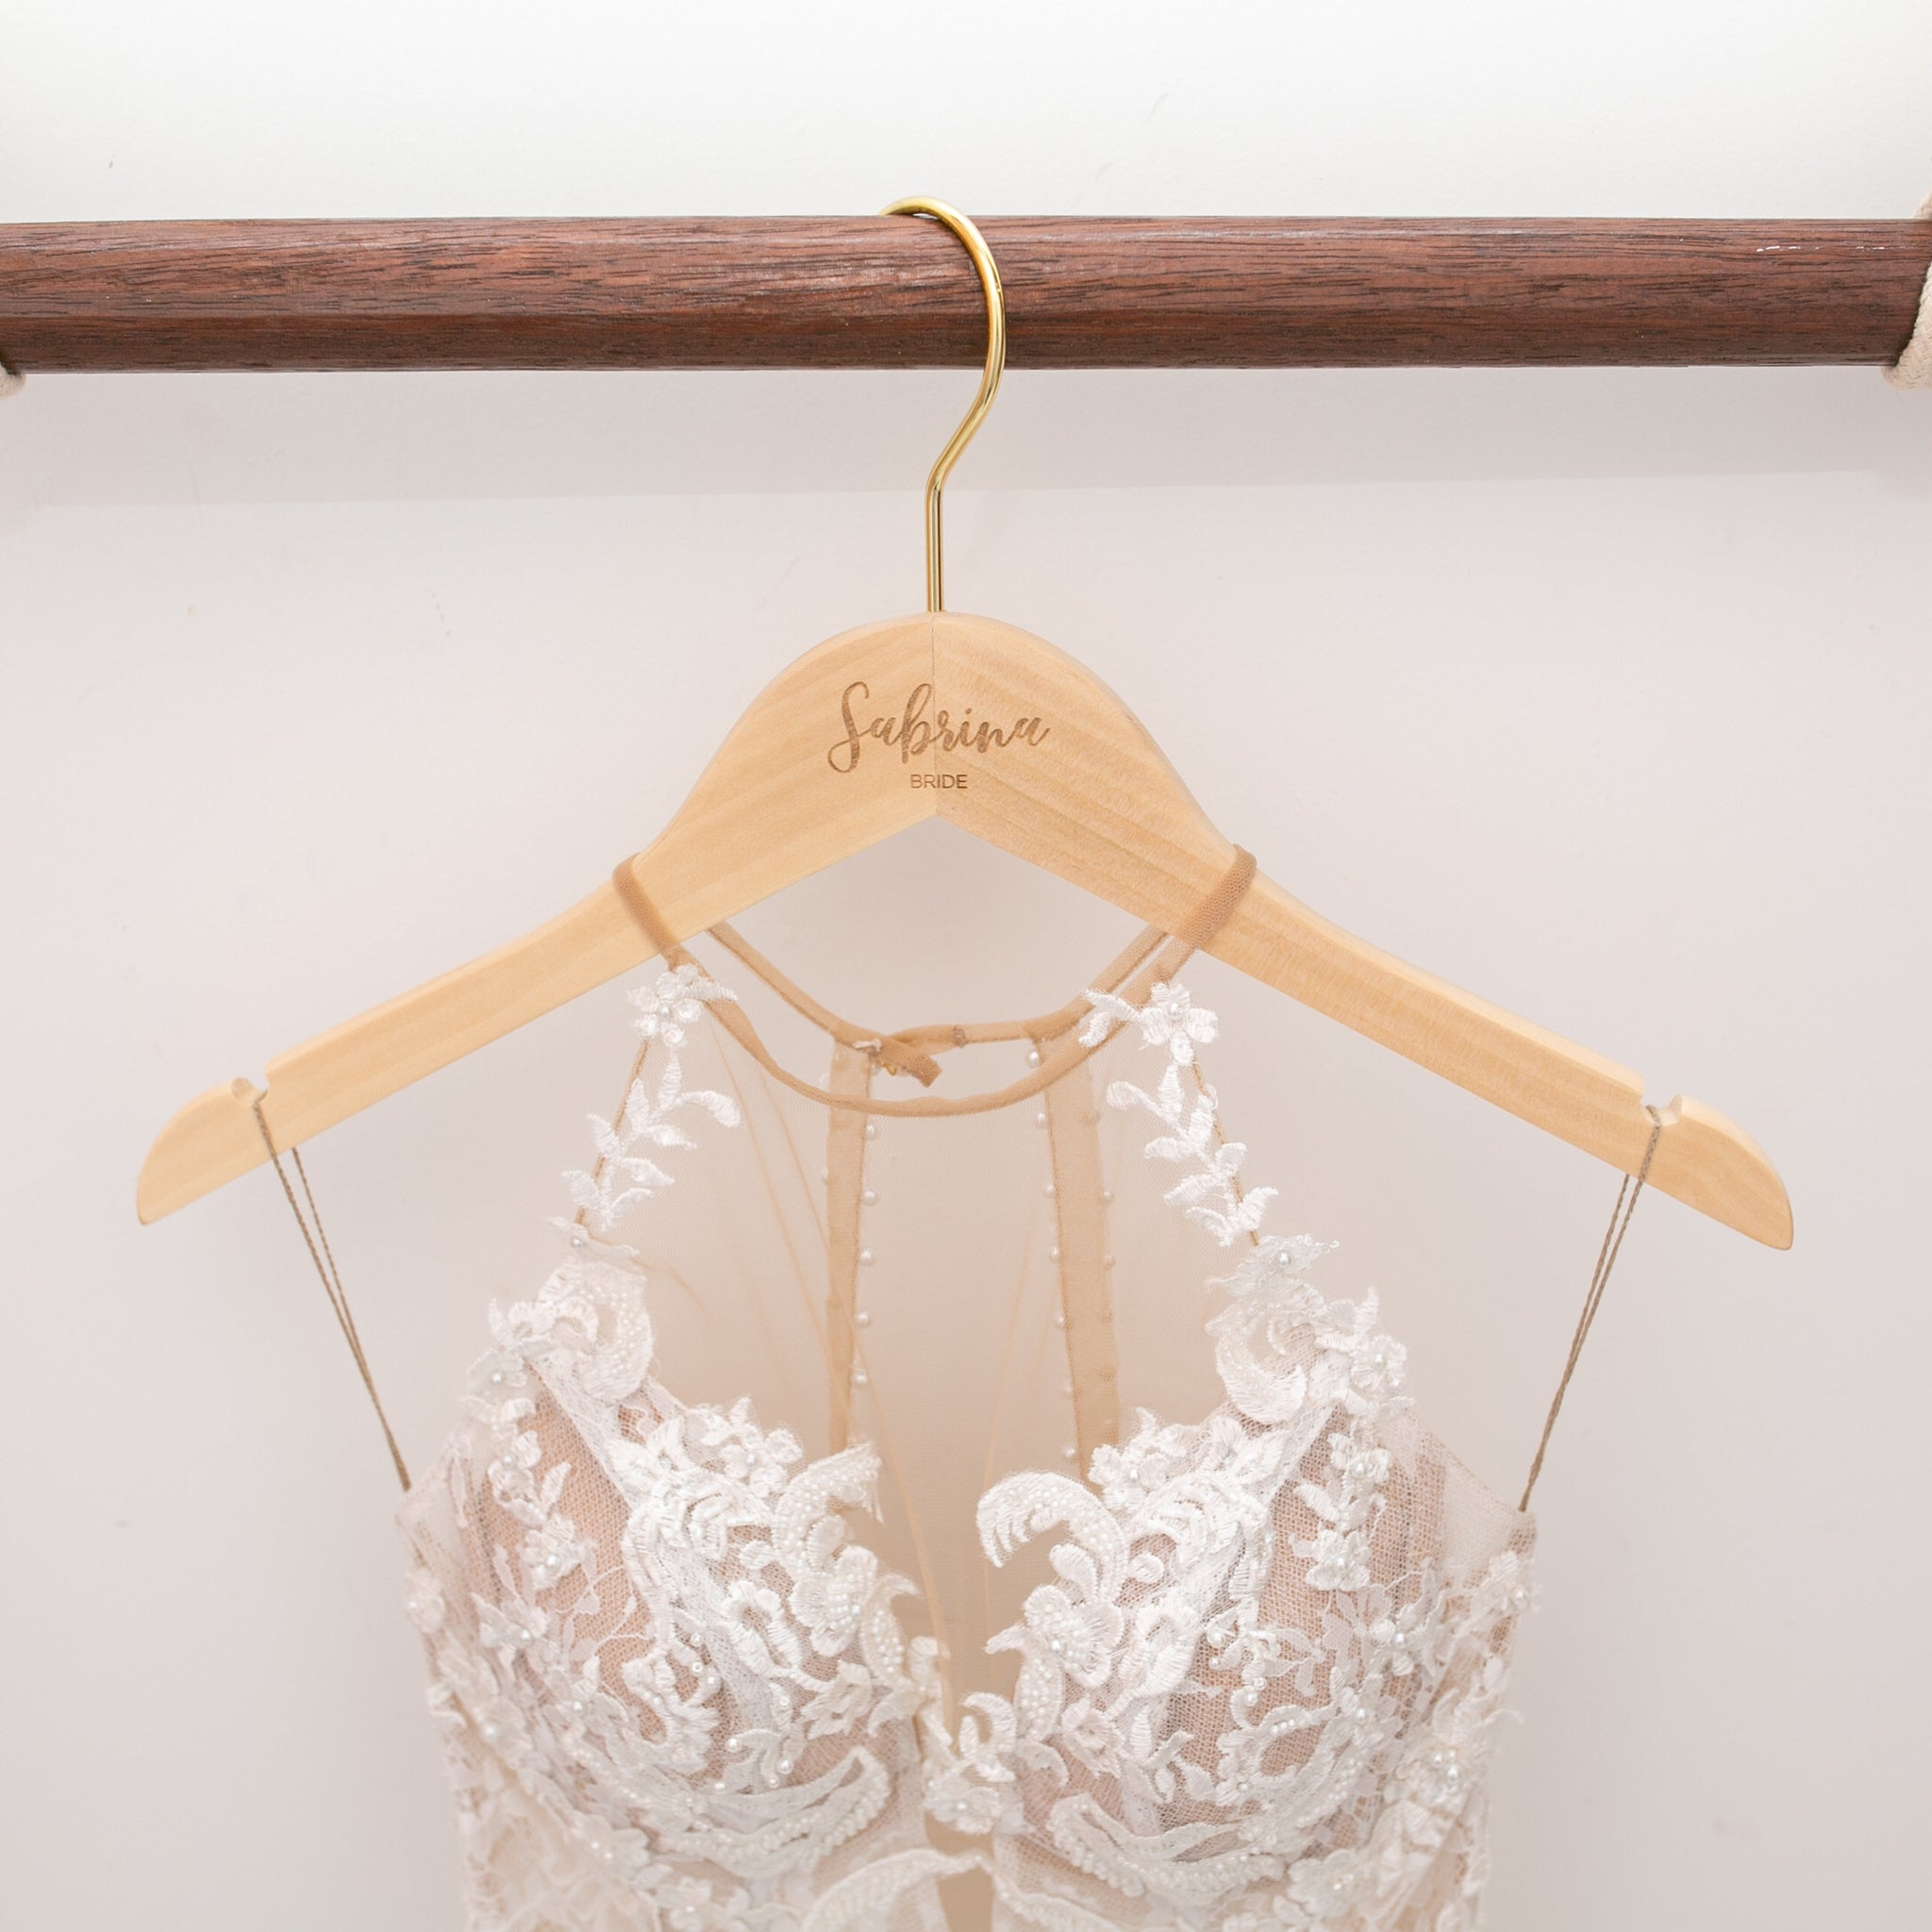 Engraved Dress Hangers - Styleper